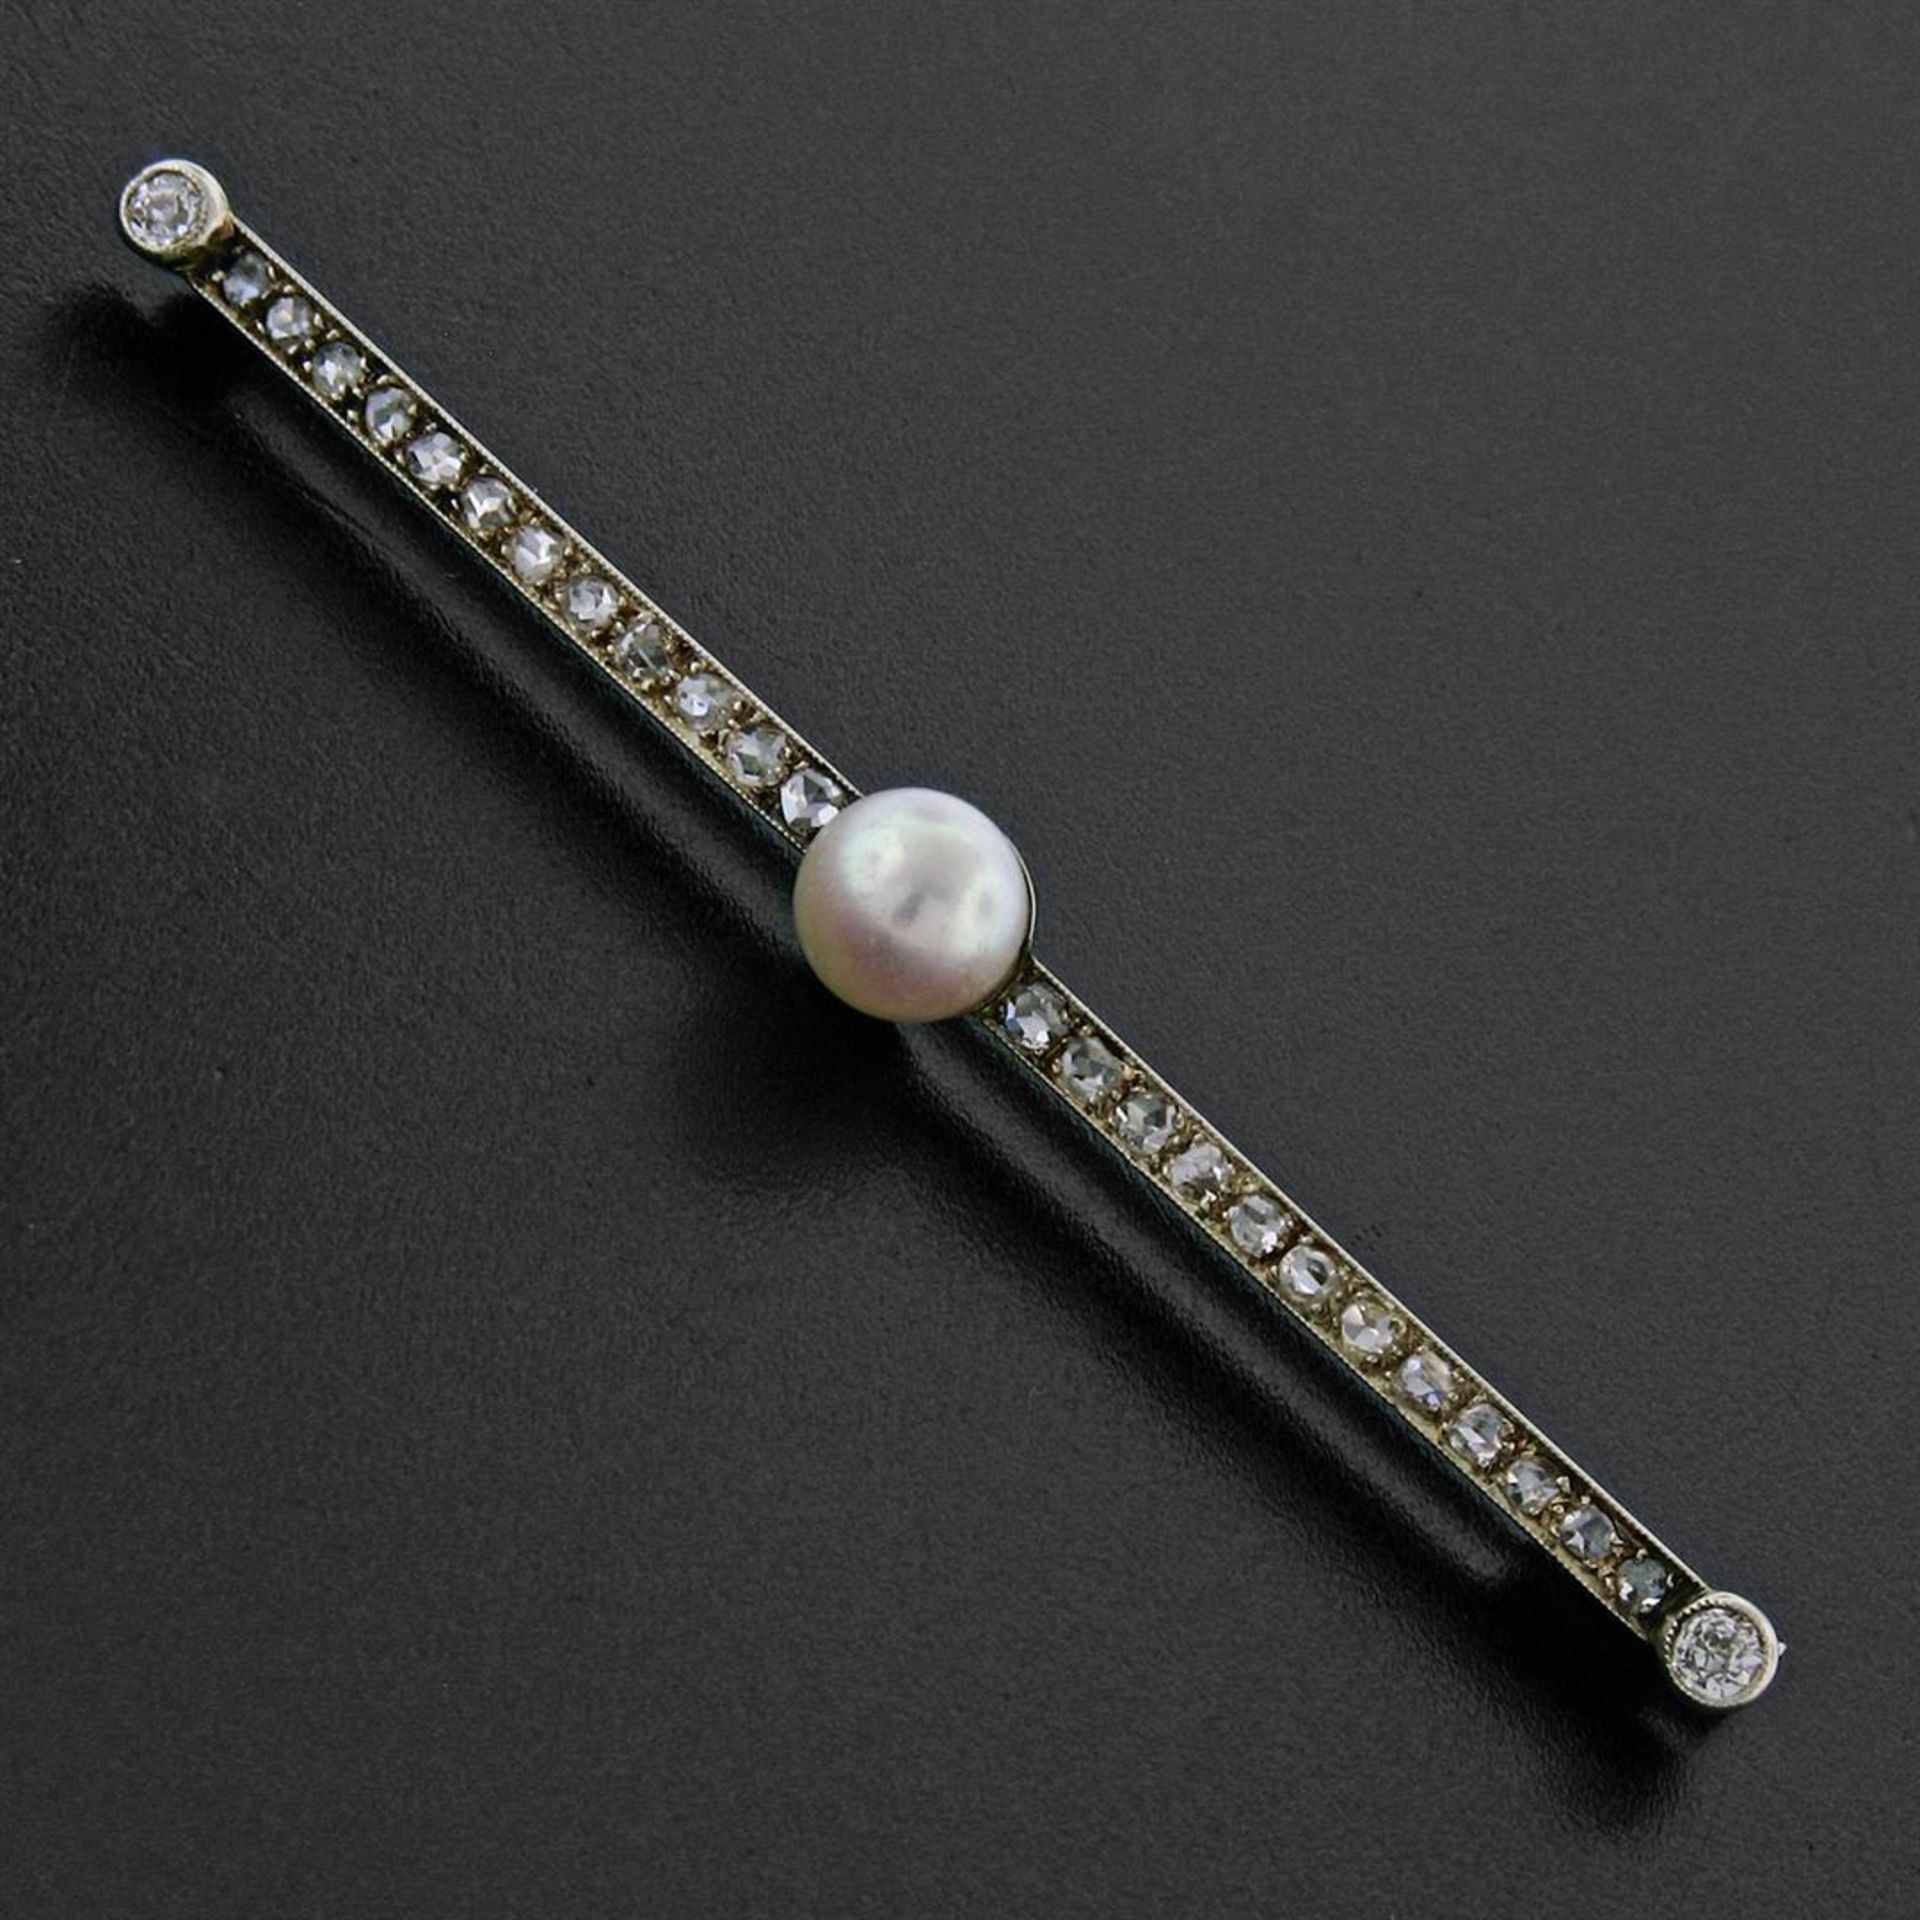 Antique 18K Gold 1.10ctw Rose & Old Mine Diamond & Pearl Milgrain Bar Pin Brooch - Image 2 of 5